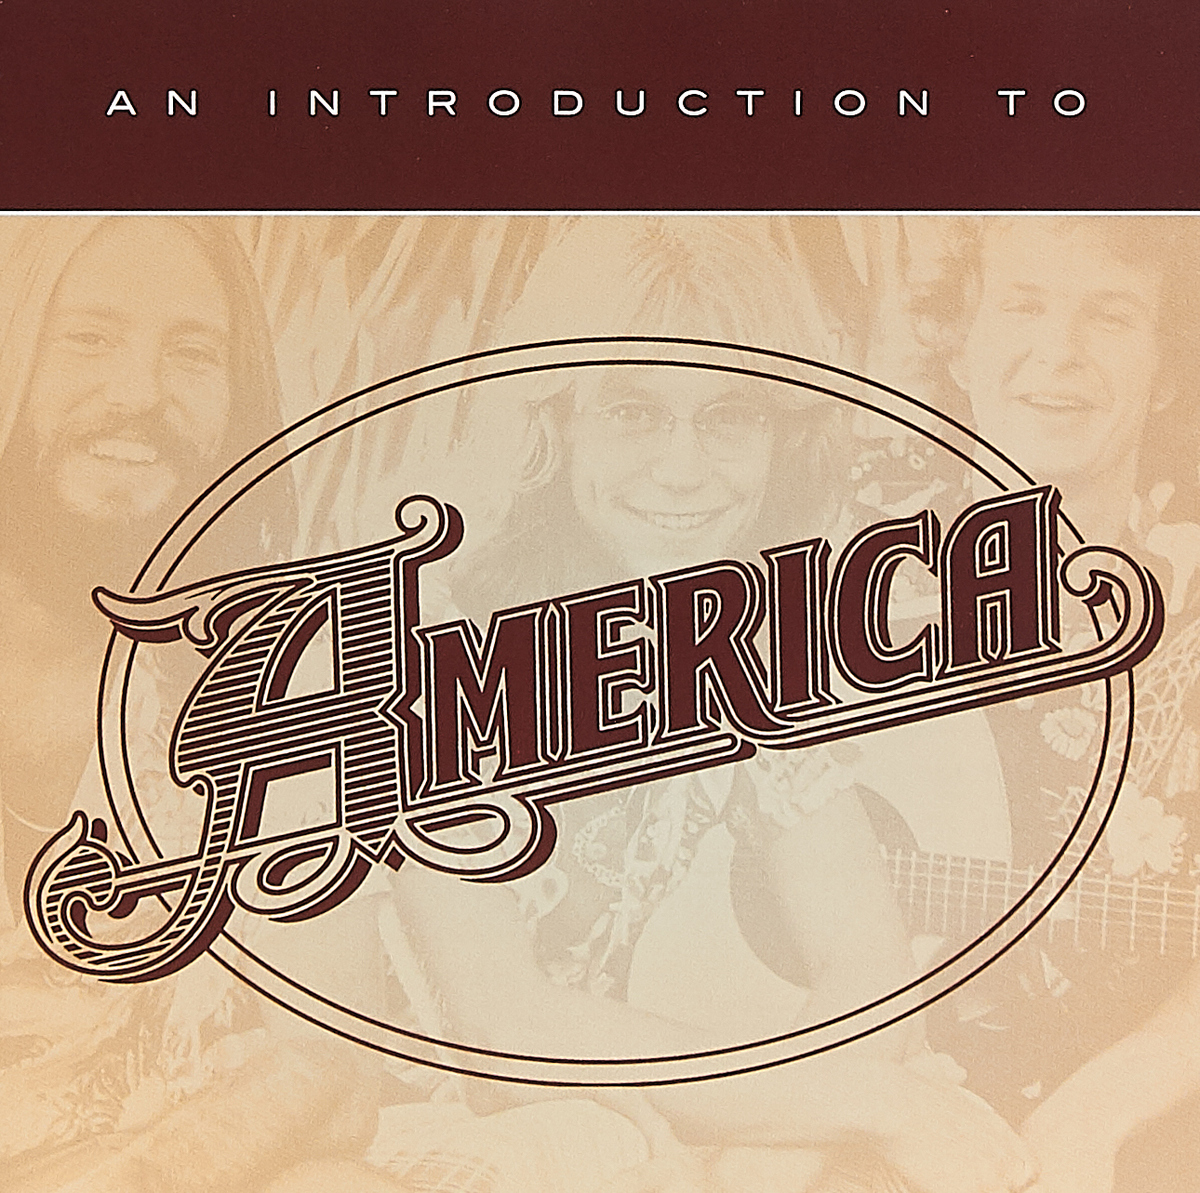 America America. An Introduction To